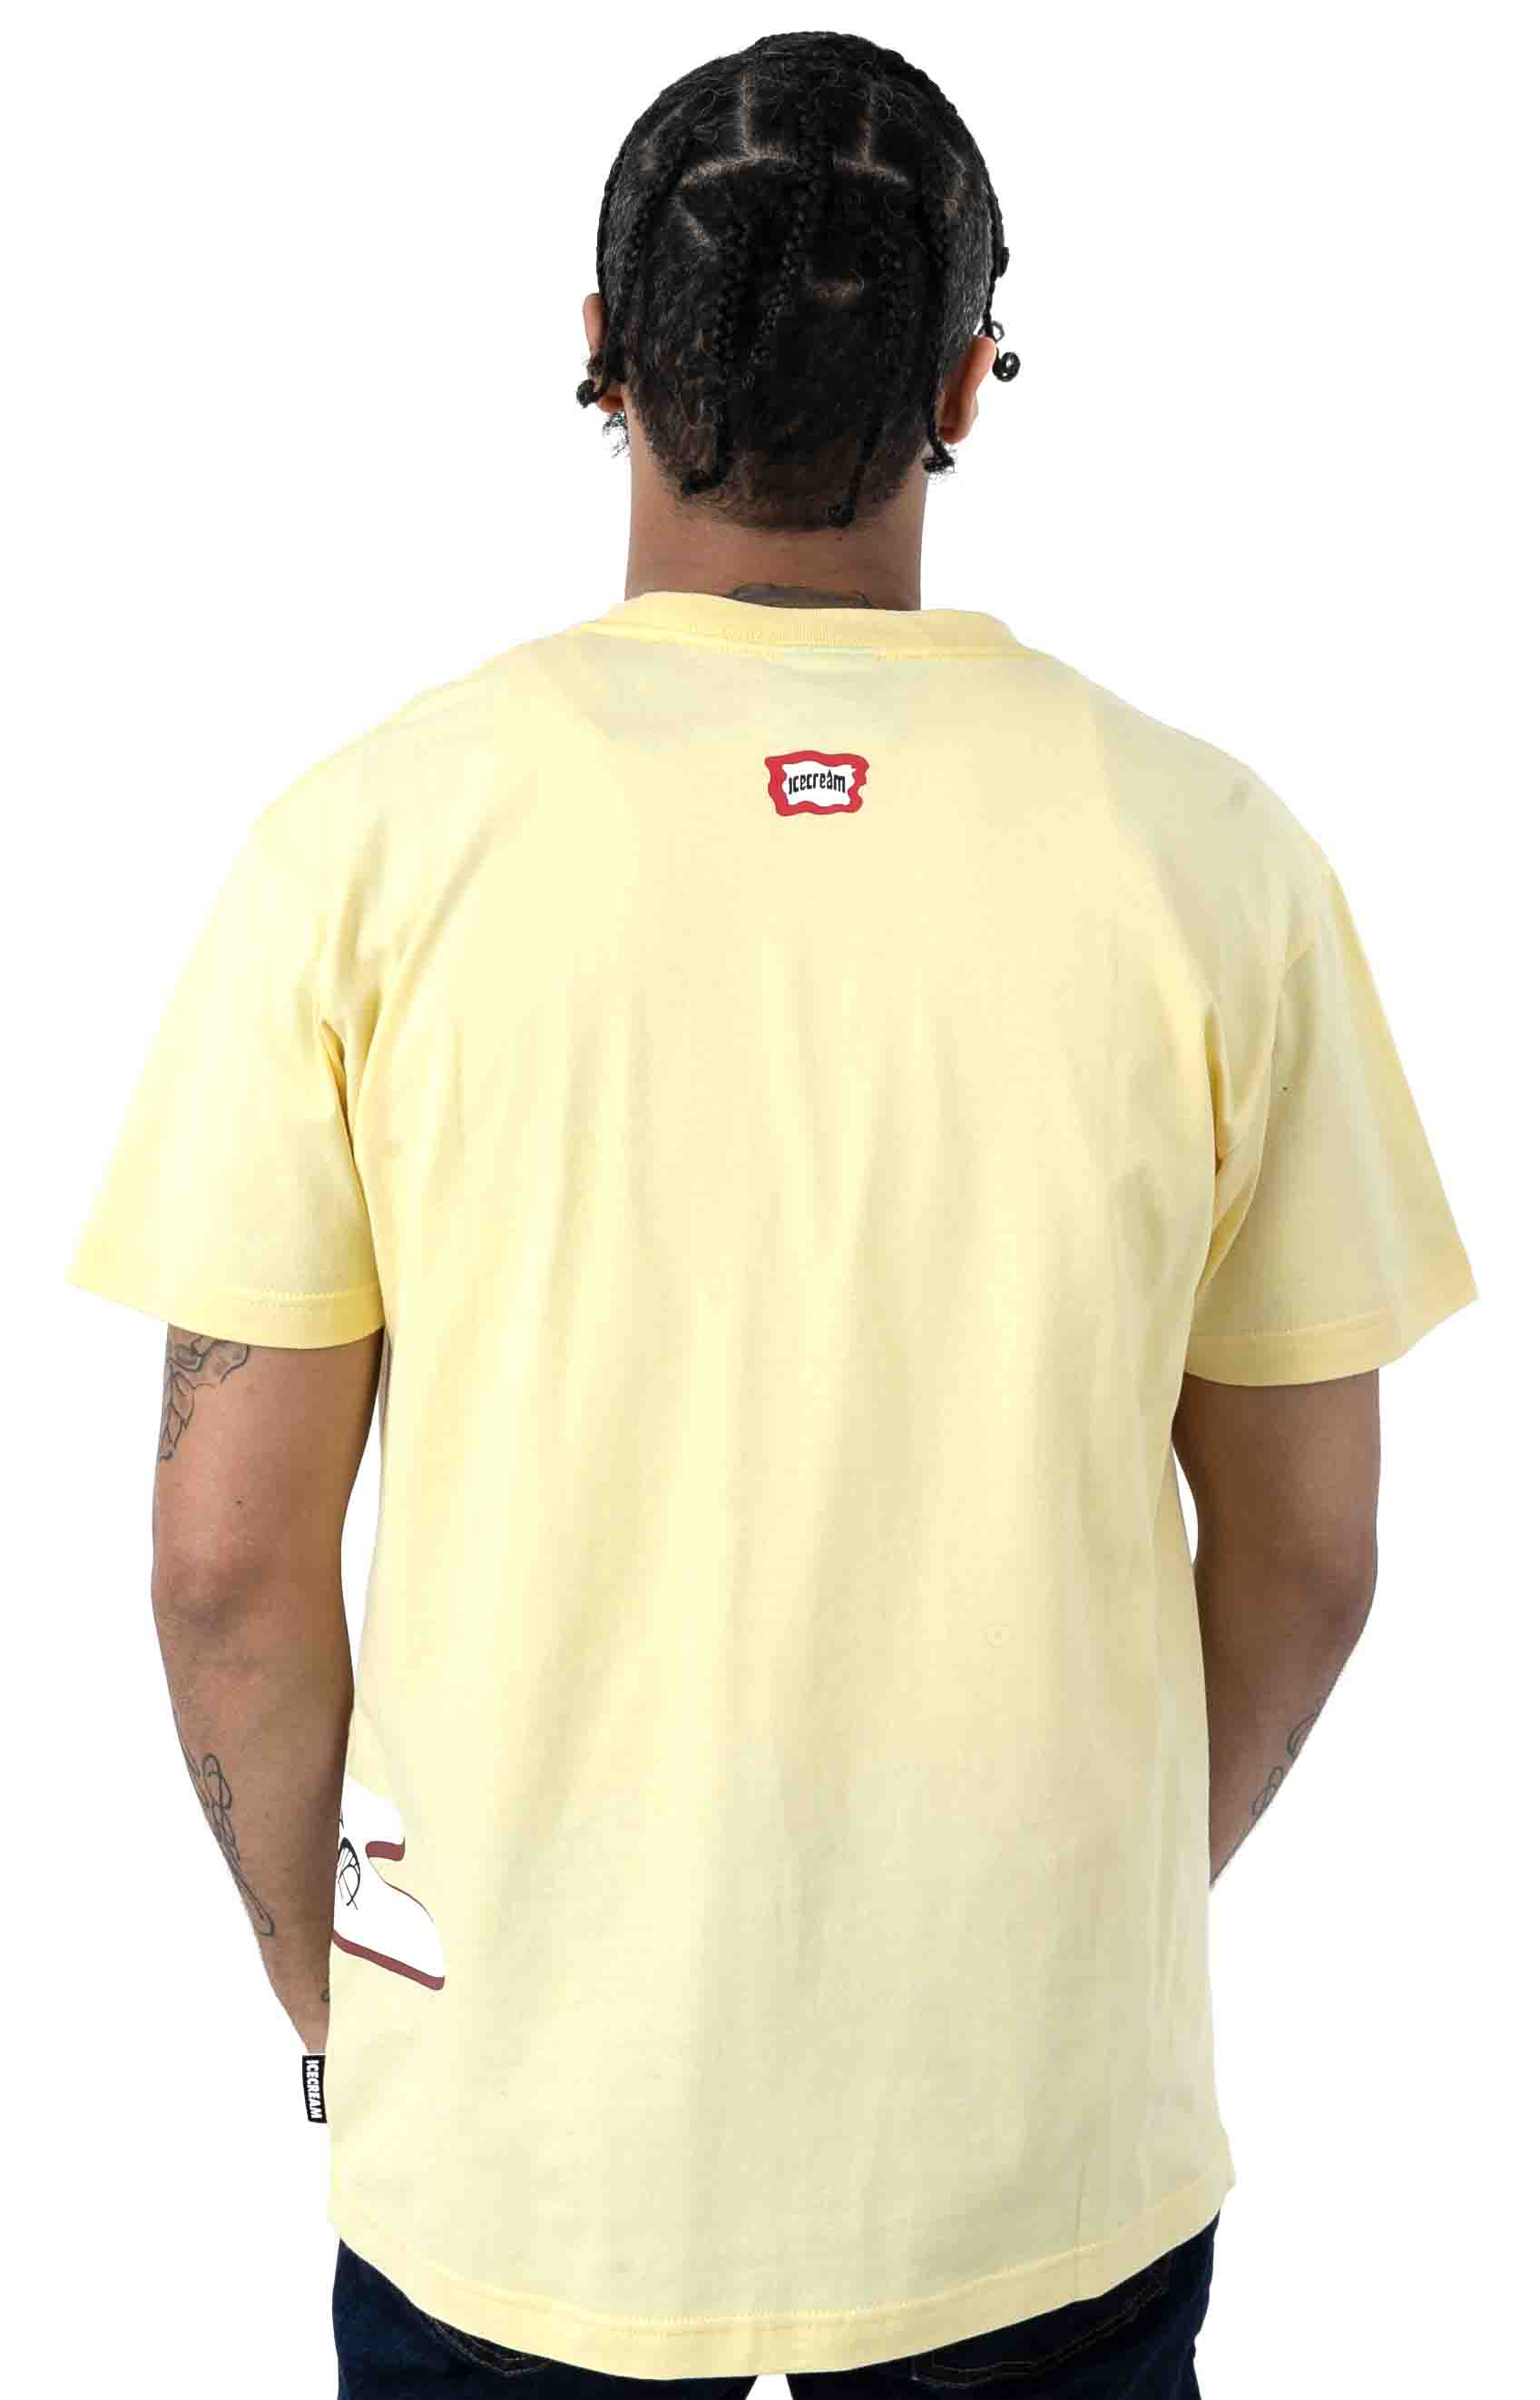 Pudwill T-Shirt - Mellow Yellow 3